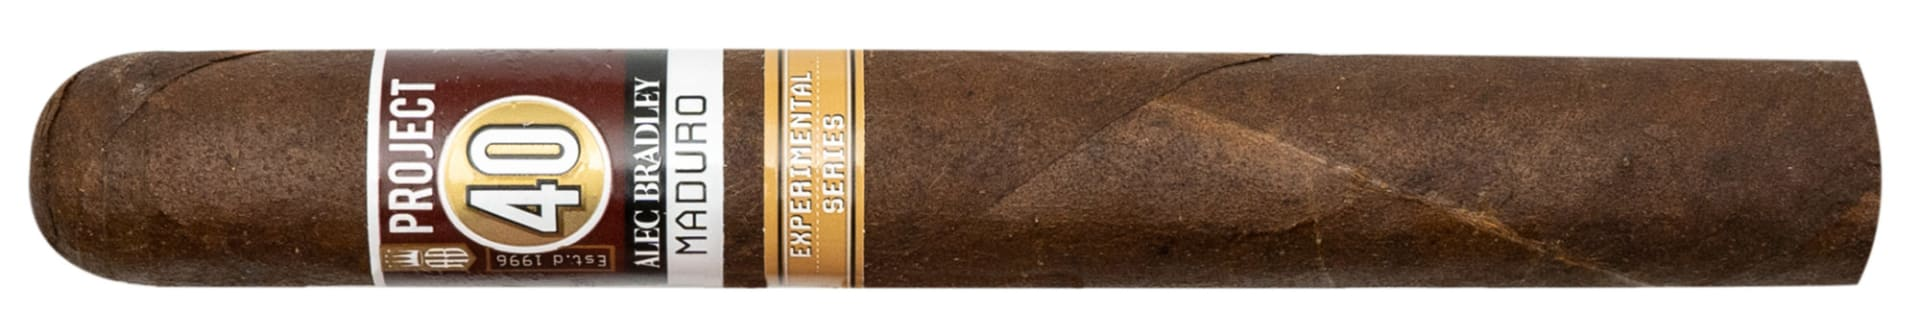 Alec Bradley Project 40 Maduro Heads to Stores Featured Image